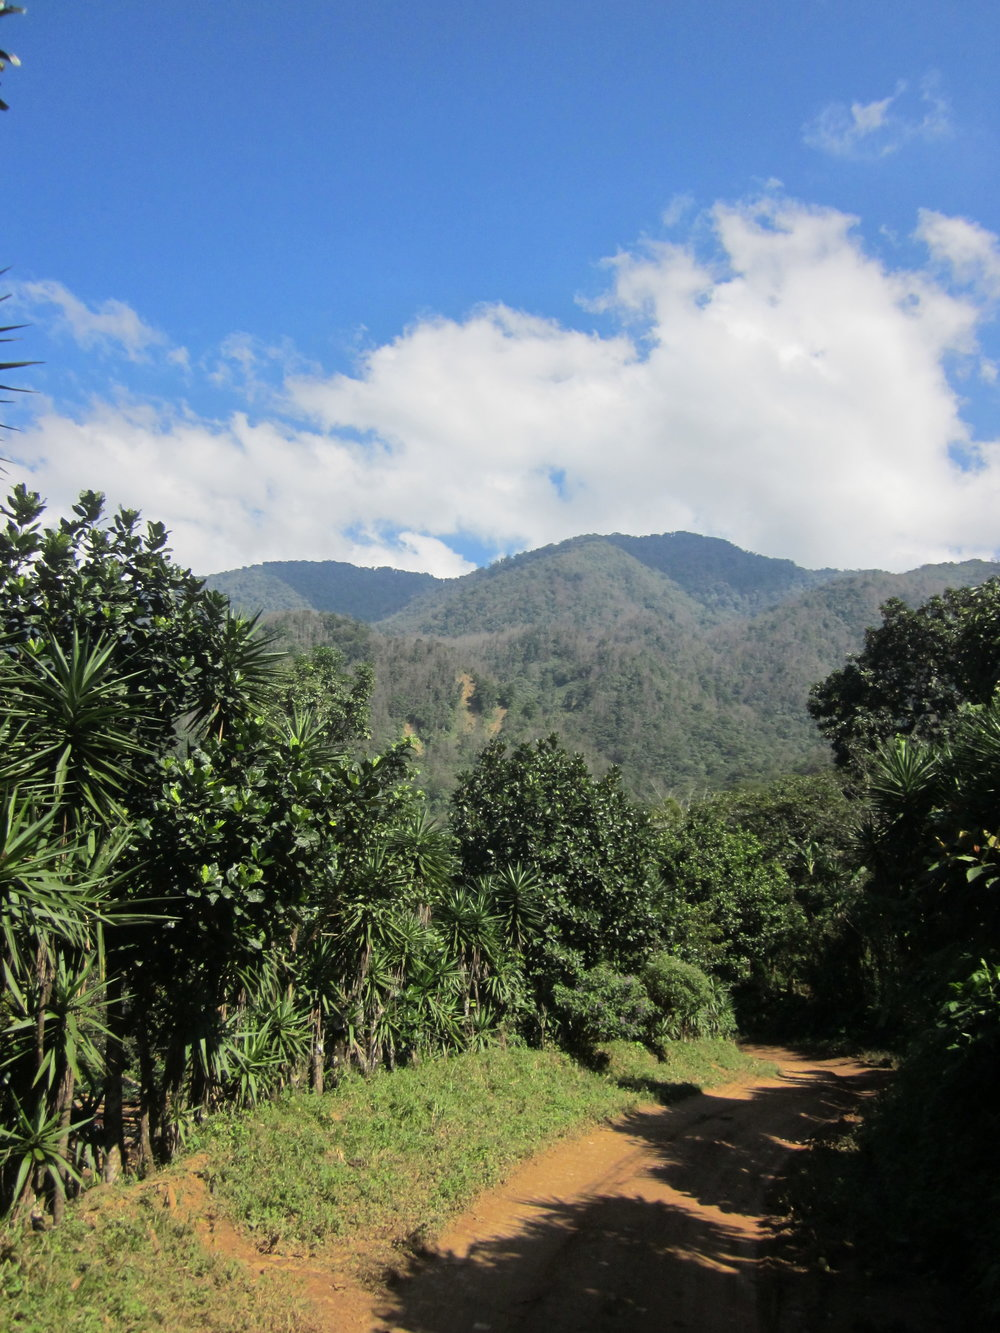 Looking up at the north end of the Comayagua Mountain Range in the village of Rio Negro.